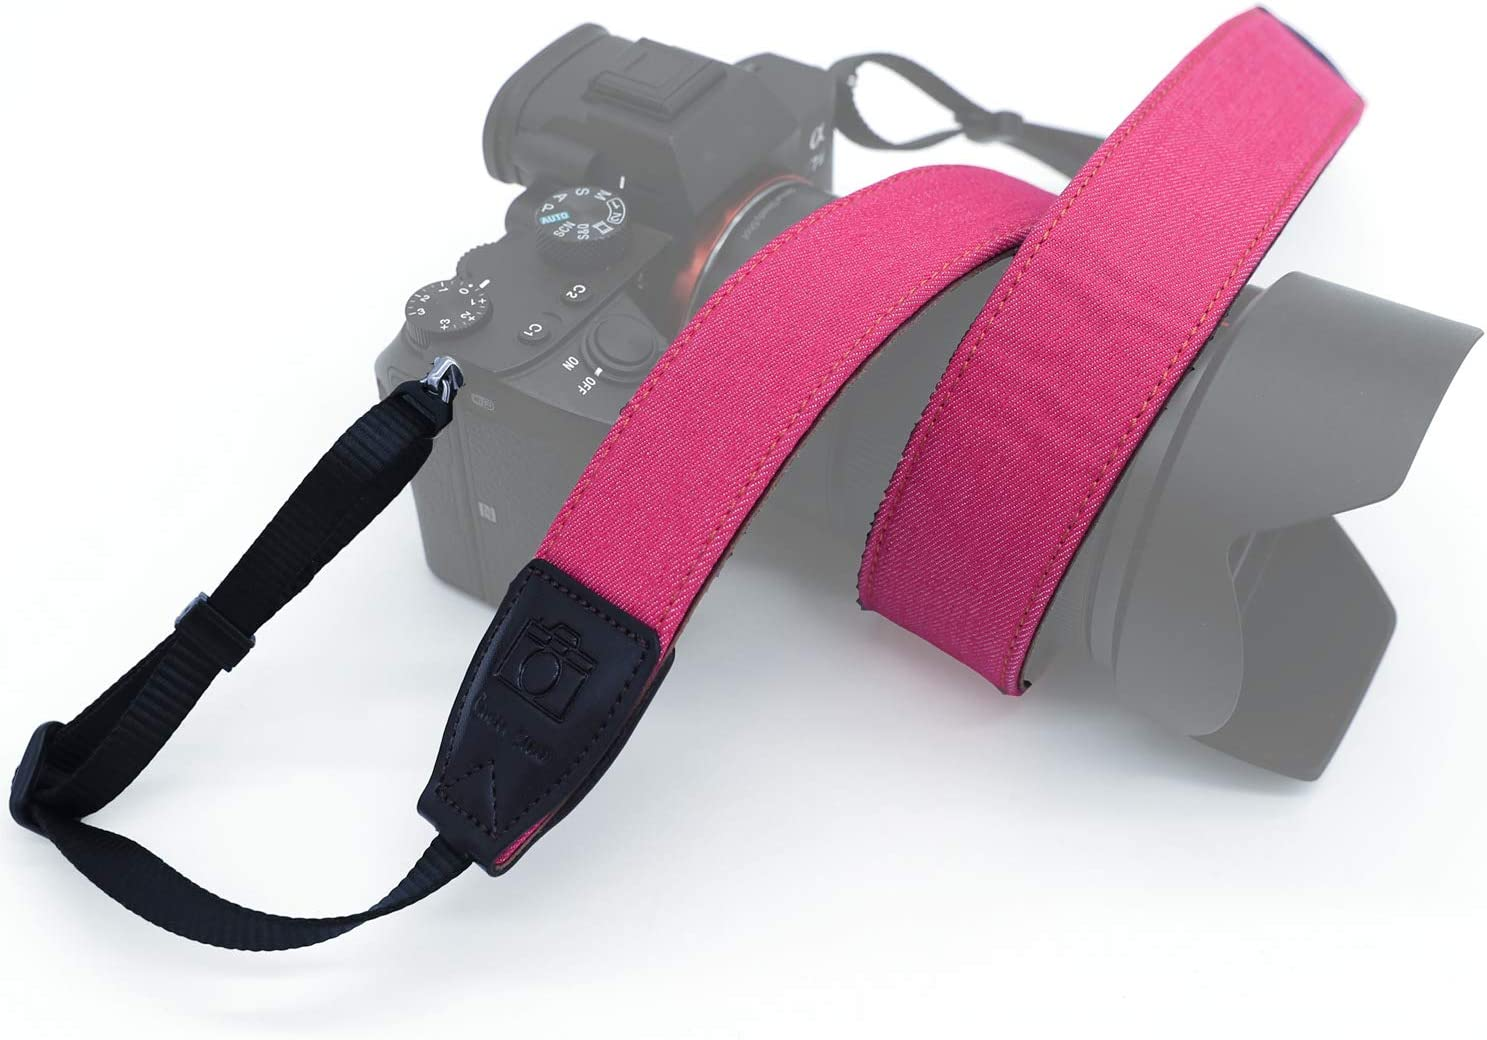 Pink DSLR /& Mirrorless Camera Crossbody Shoulder Belt Sling for Sony Canon Nikon Fujifilm Pentax Leica Adjustable Safety Tether Professional Replacement Heavy Duty Camera Neck Strap